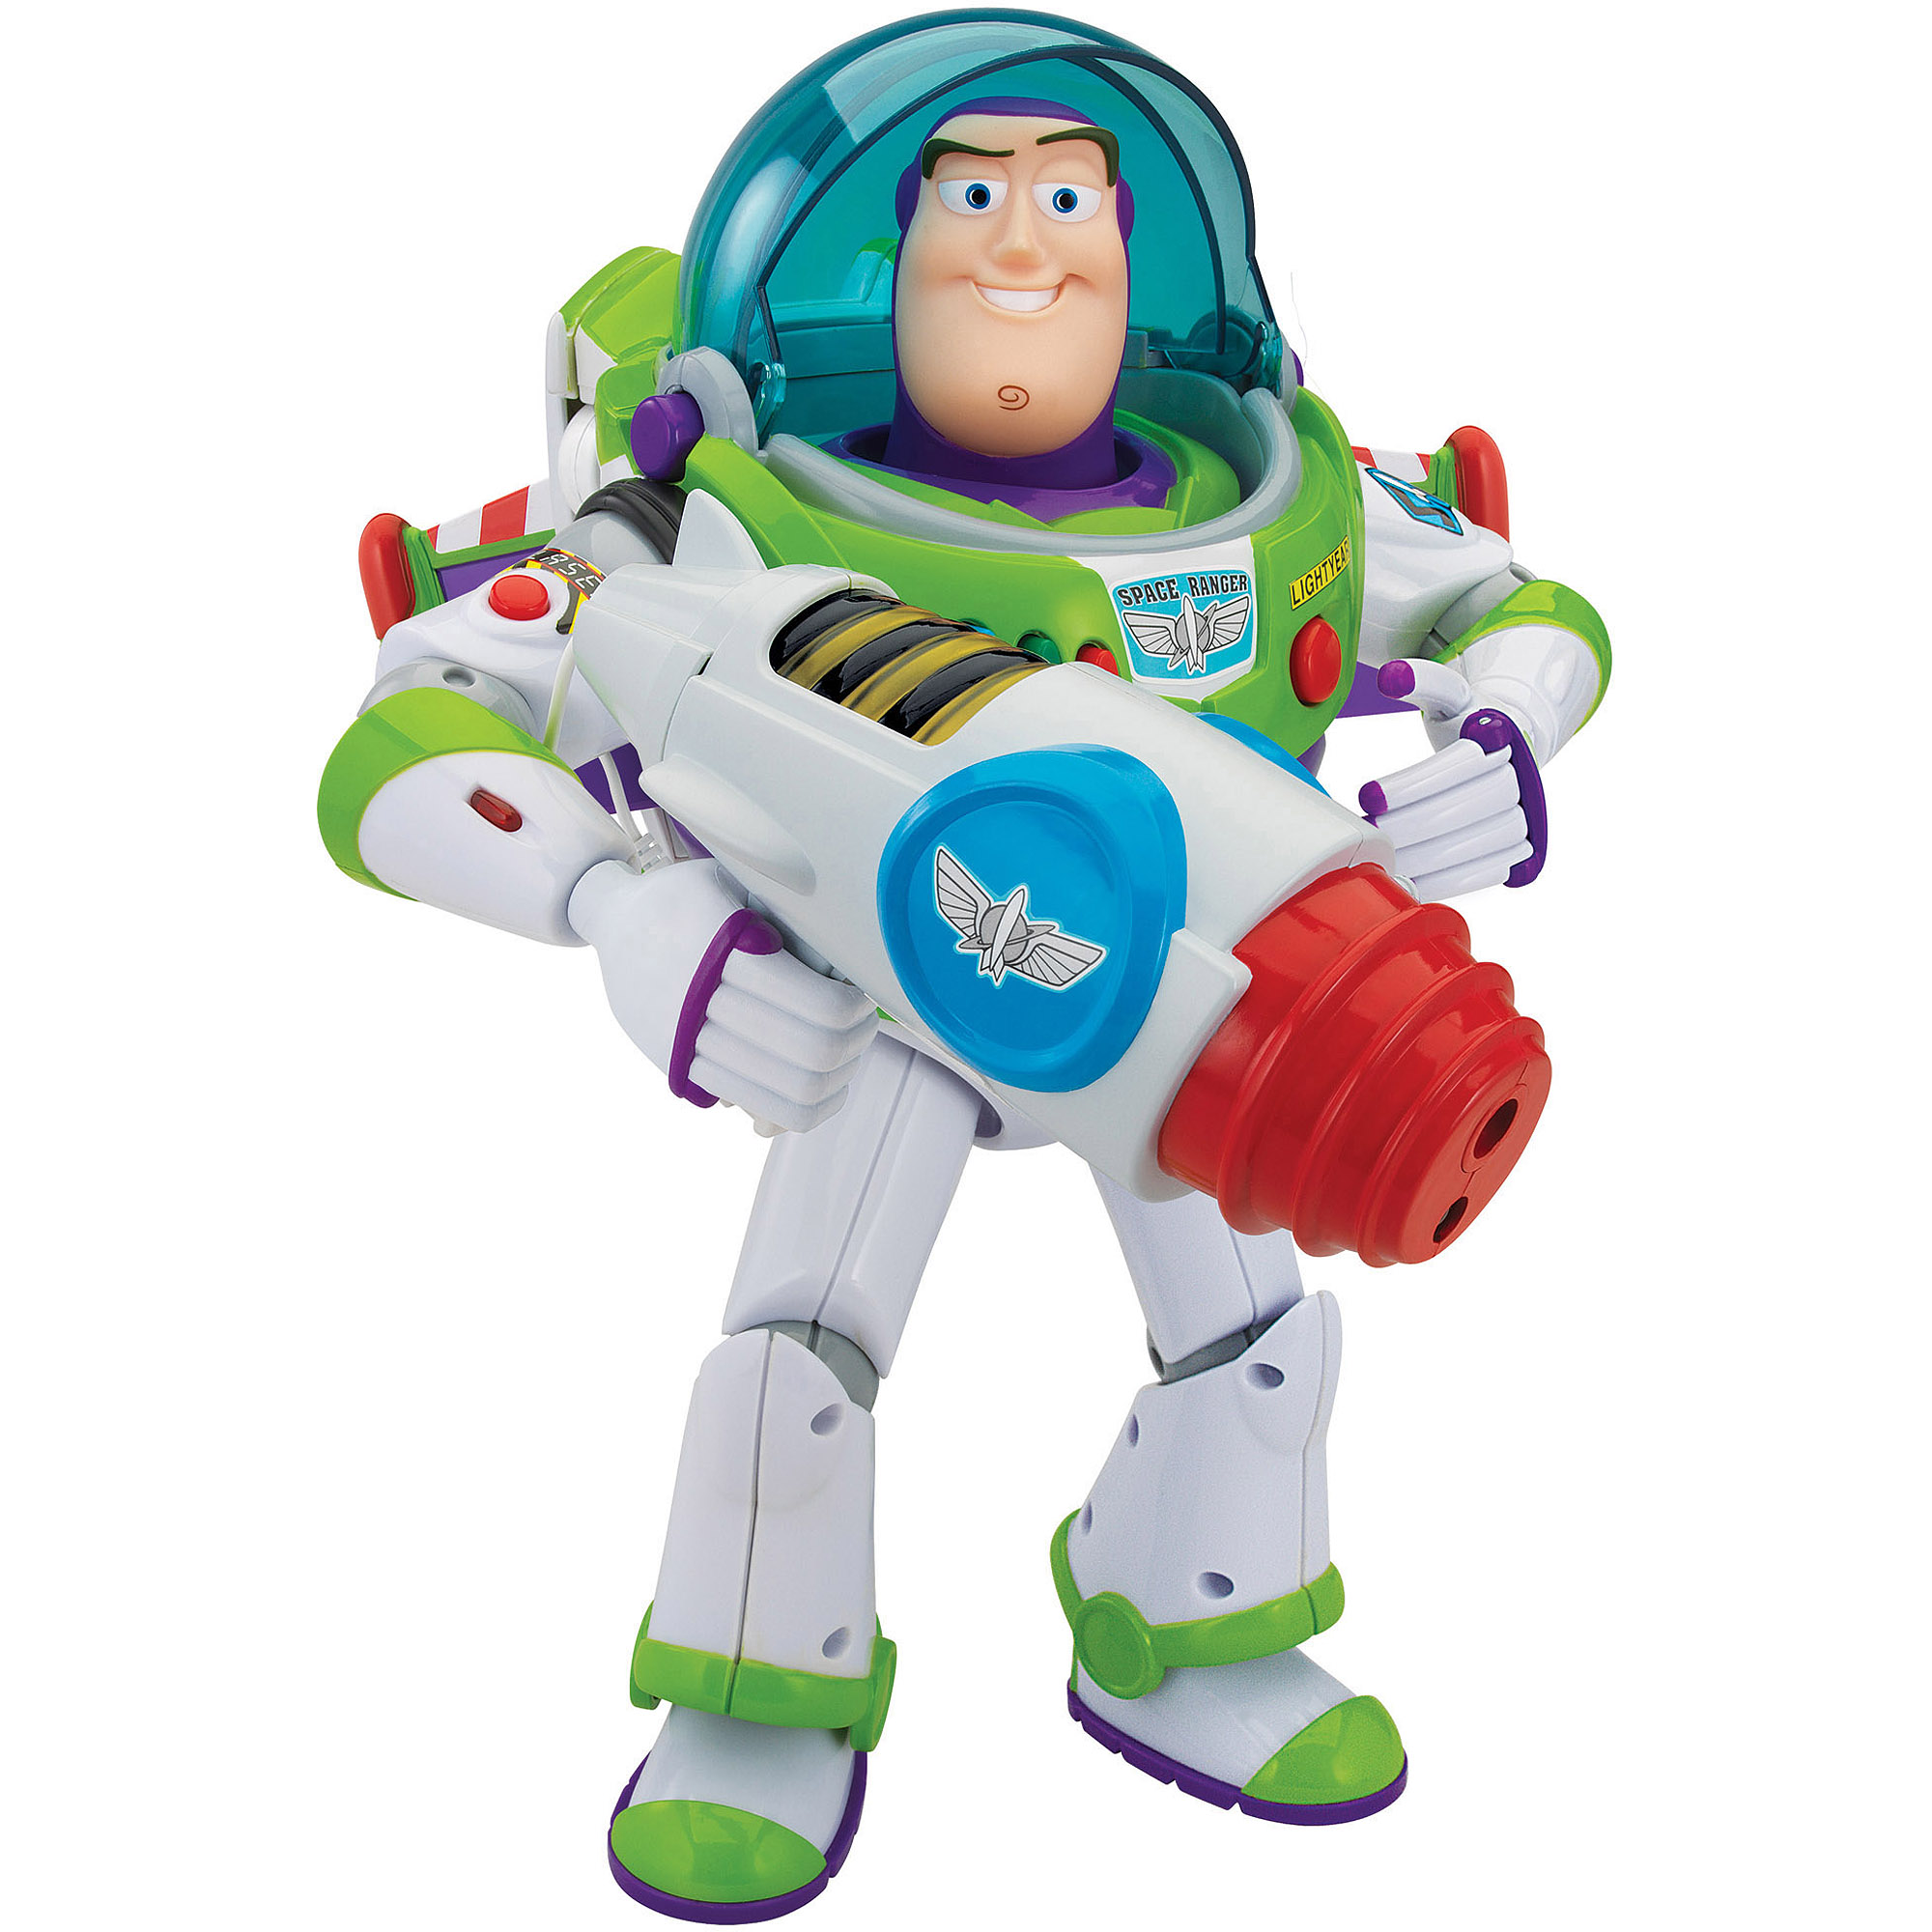 Toy Story Buzz Lightyear Power Projecto Talking Action Figure  sc 1 st  Walmart & Toy Story Buzz Lightyear Power Projecto Talking Action Figure ...